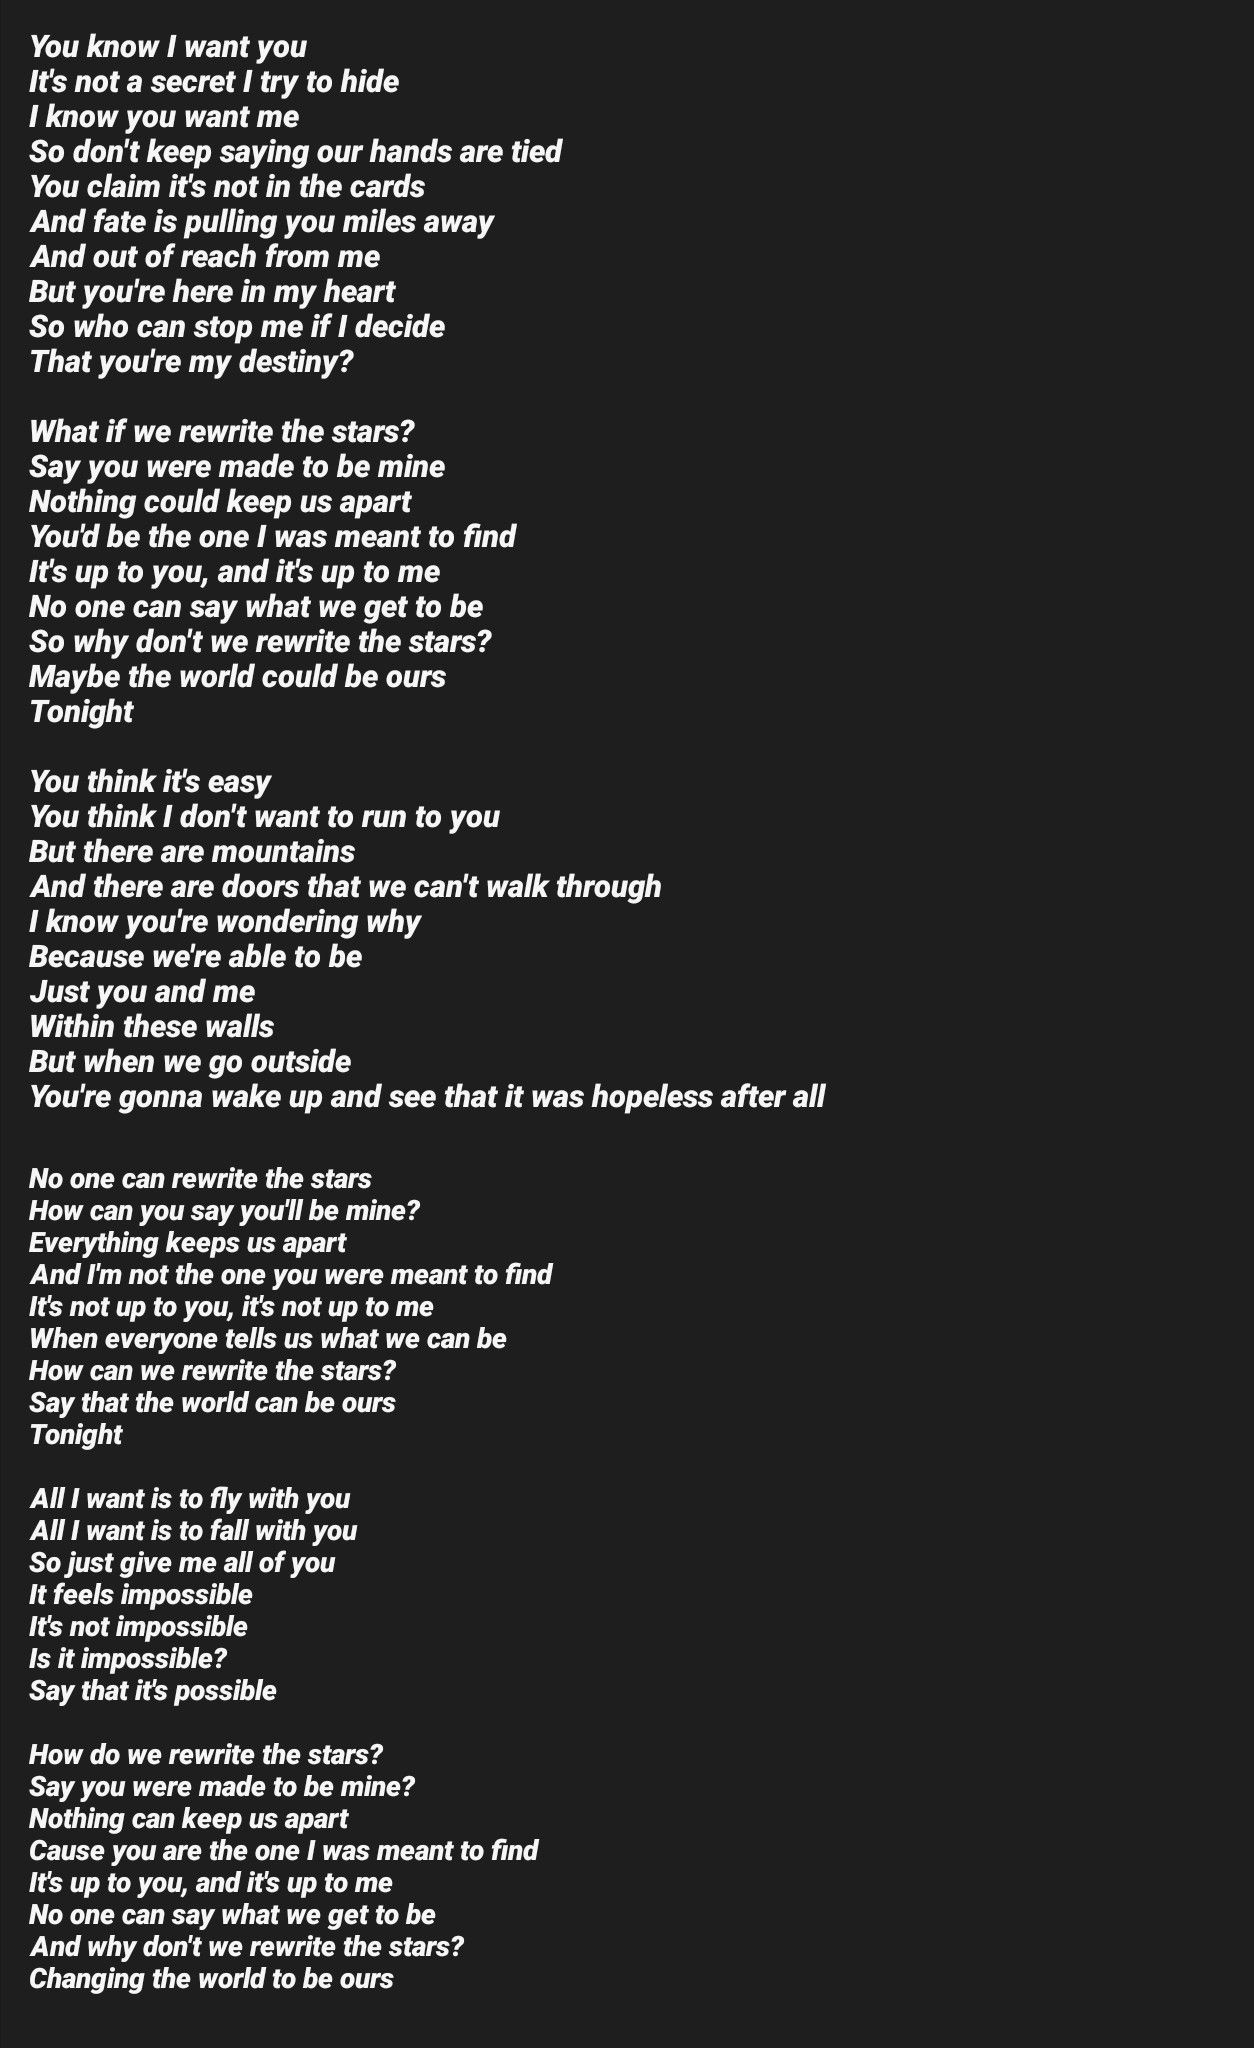 If you were here with me tonight lyrics